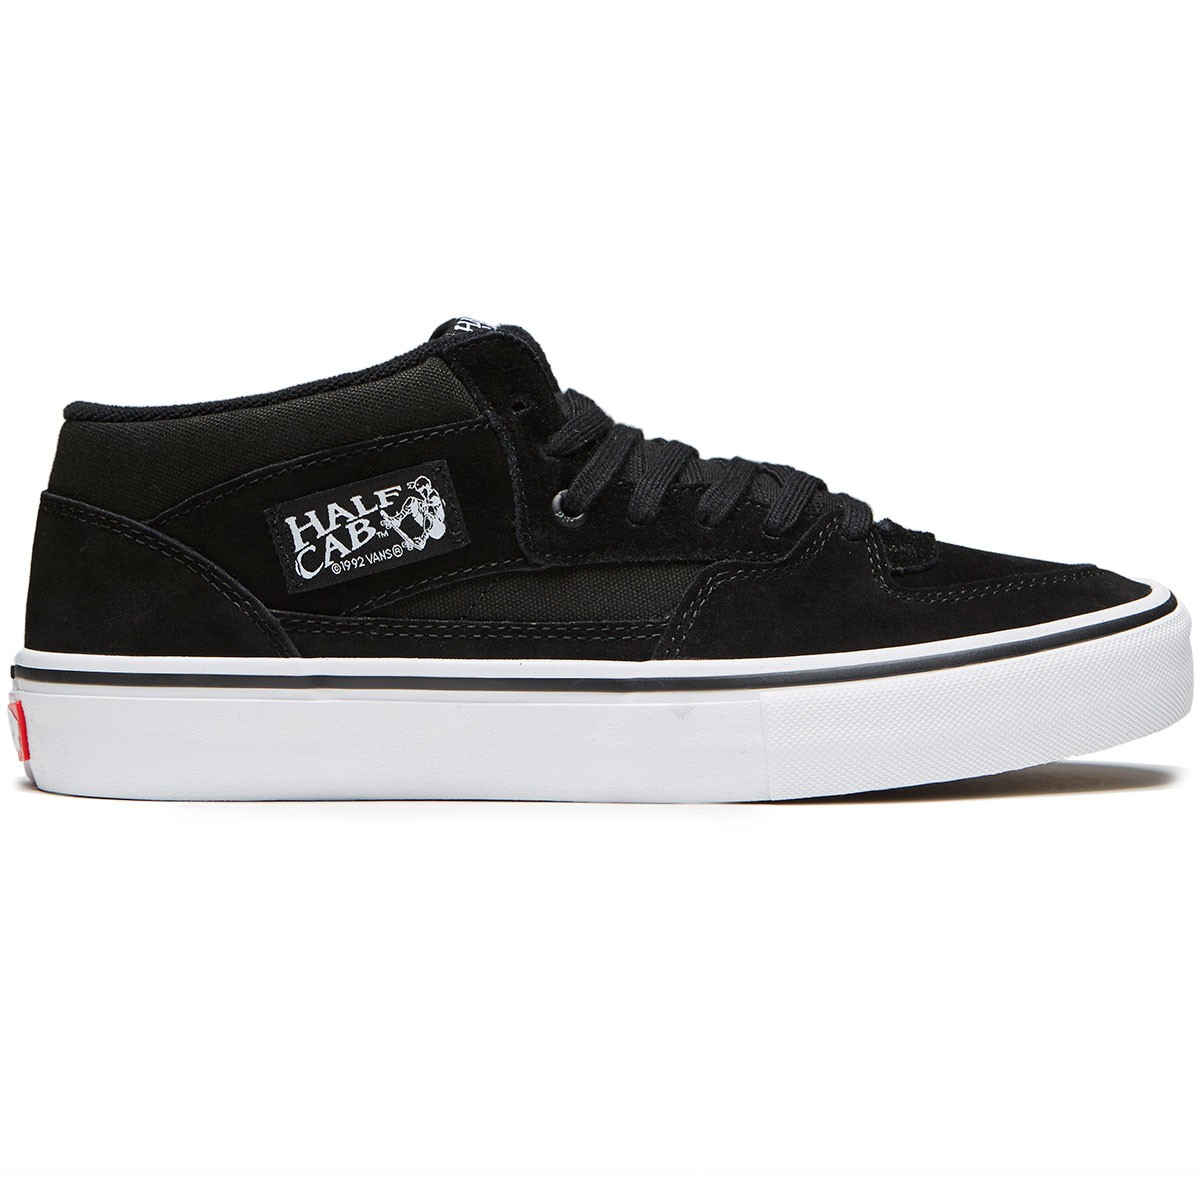 a04022ae3ea4a8 Vans Half Cab Pro Shoes - Black Black White - 8.0